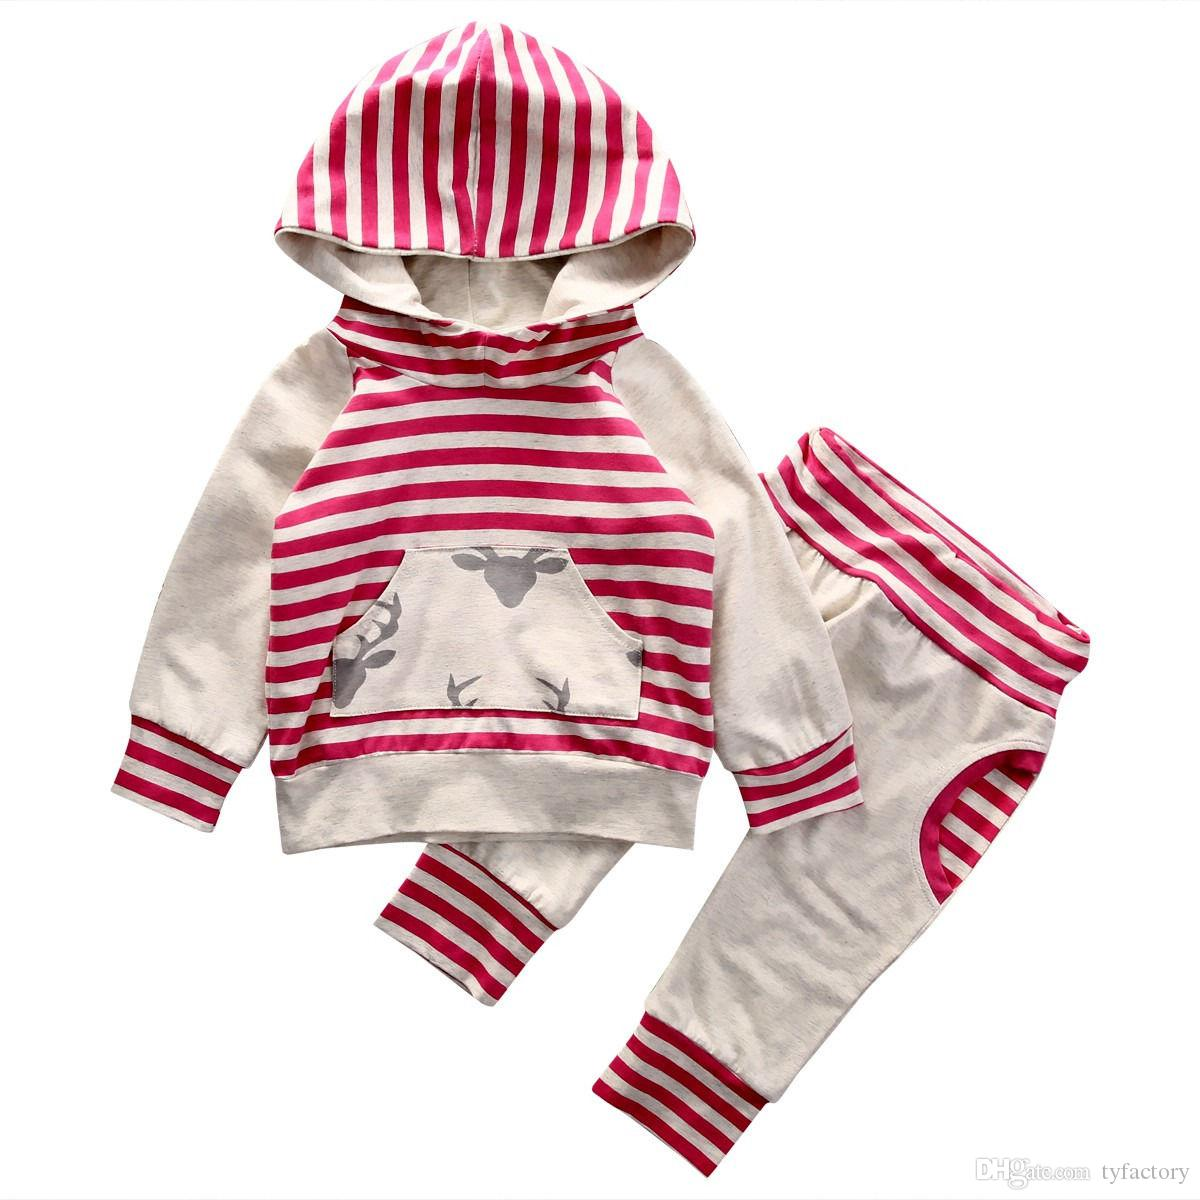 2017 Toddler Baby Boys Girls Reindeer Red Striped Tops Hooded + Harem Pants Outfits Set 6M-3Y